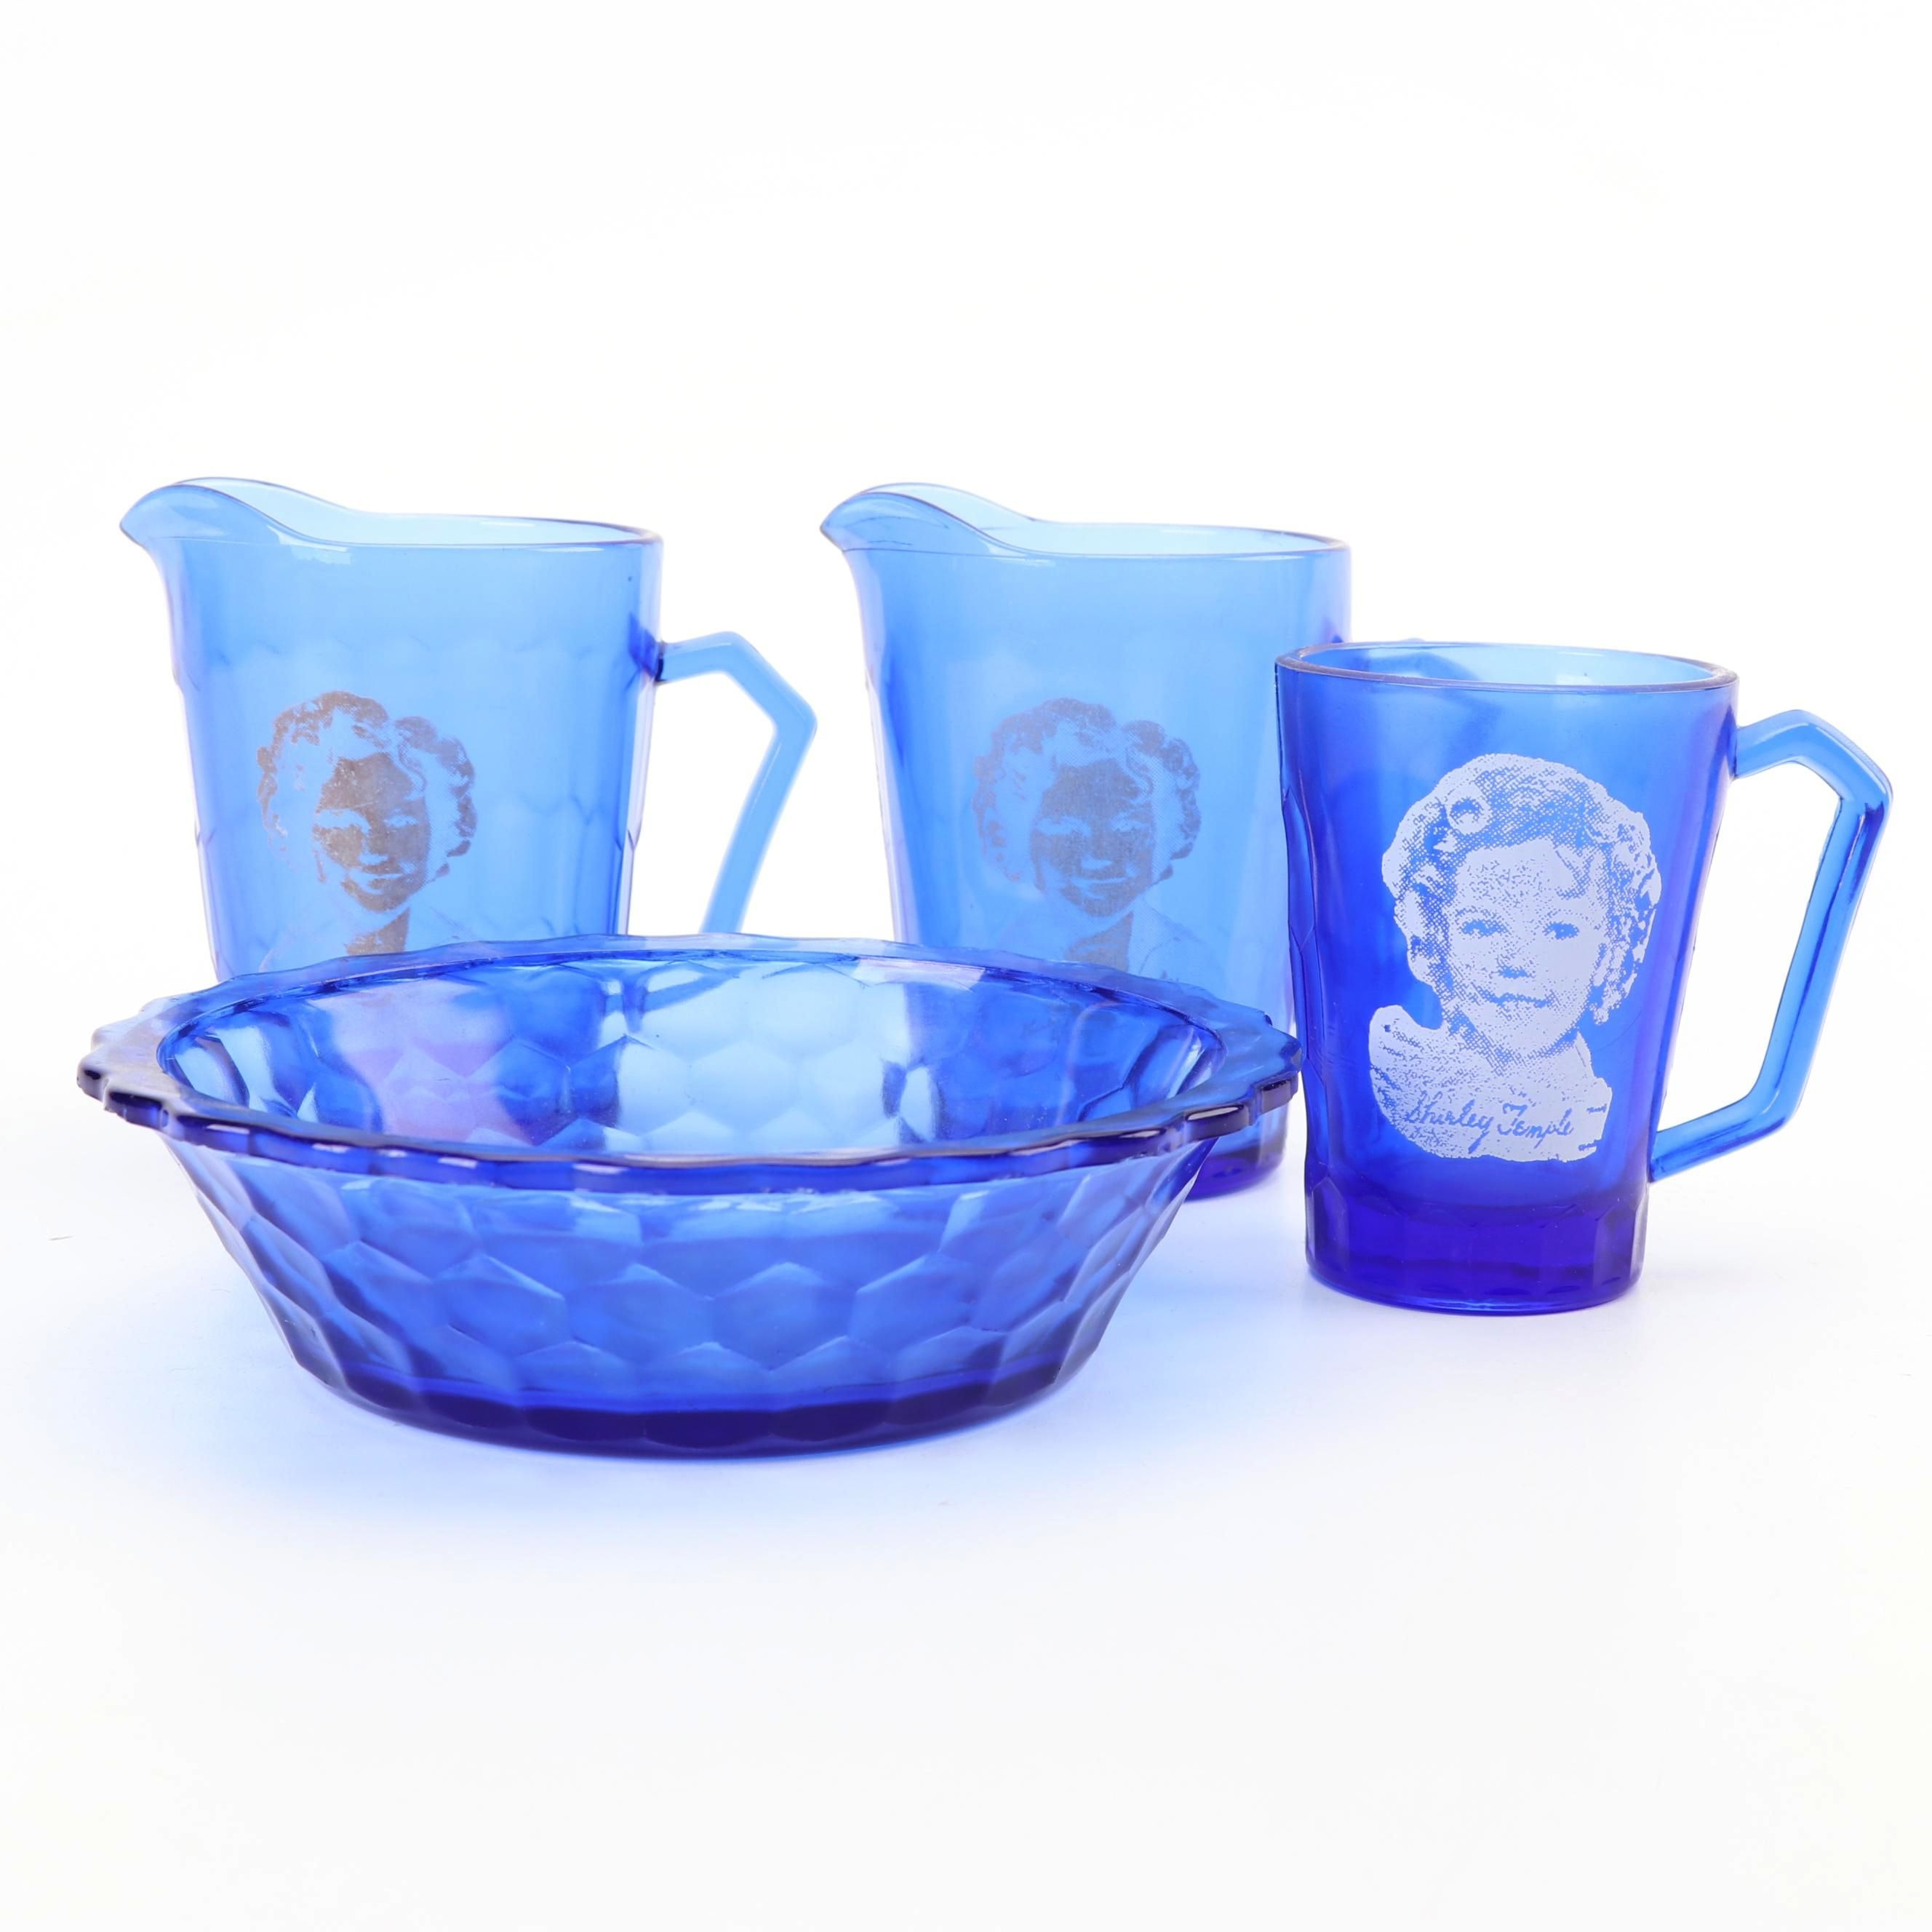 Vintage Shirley Temple Themed Cobalt Glass Serveware featuring Hazel-Atlas